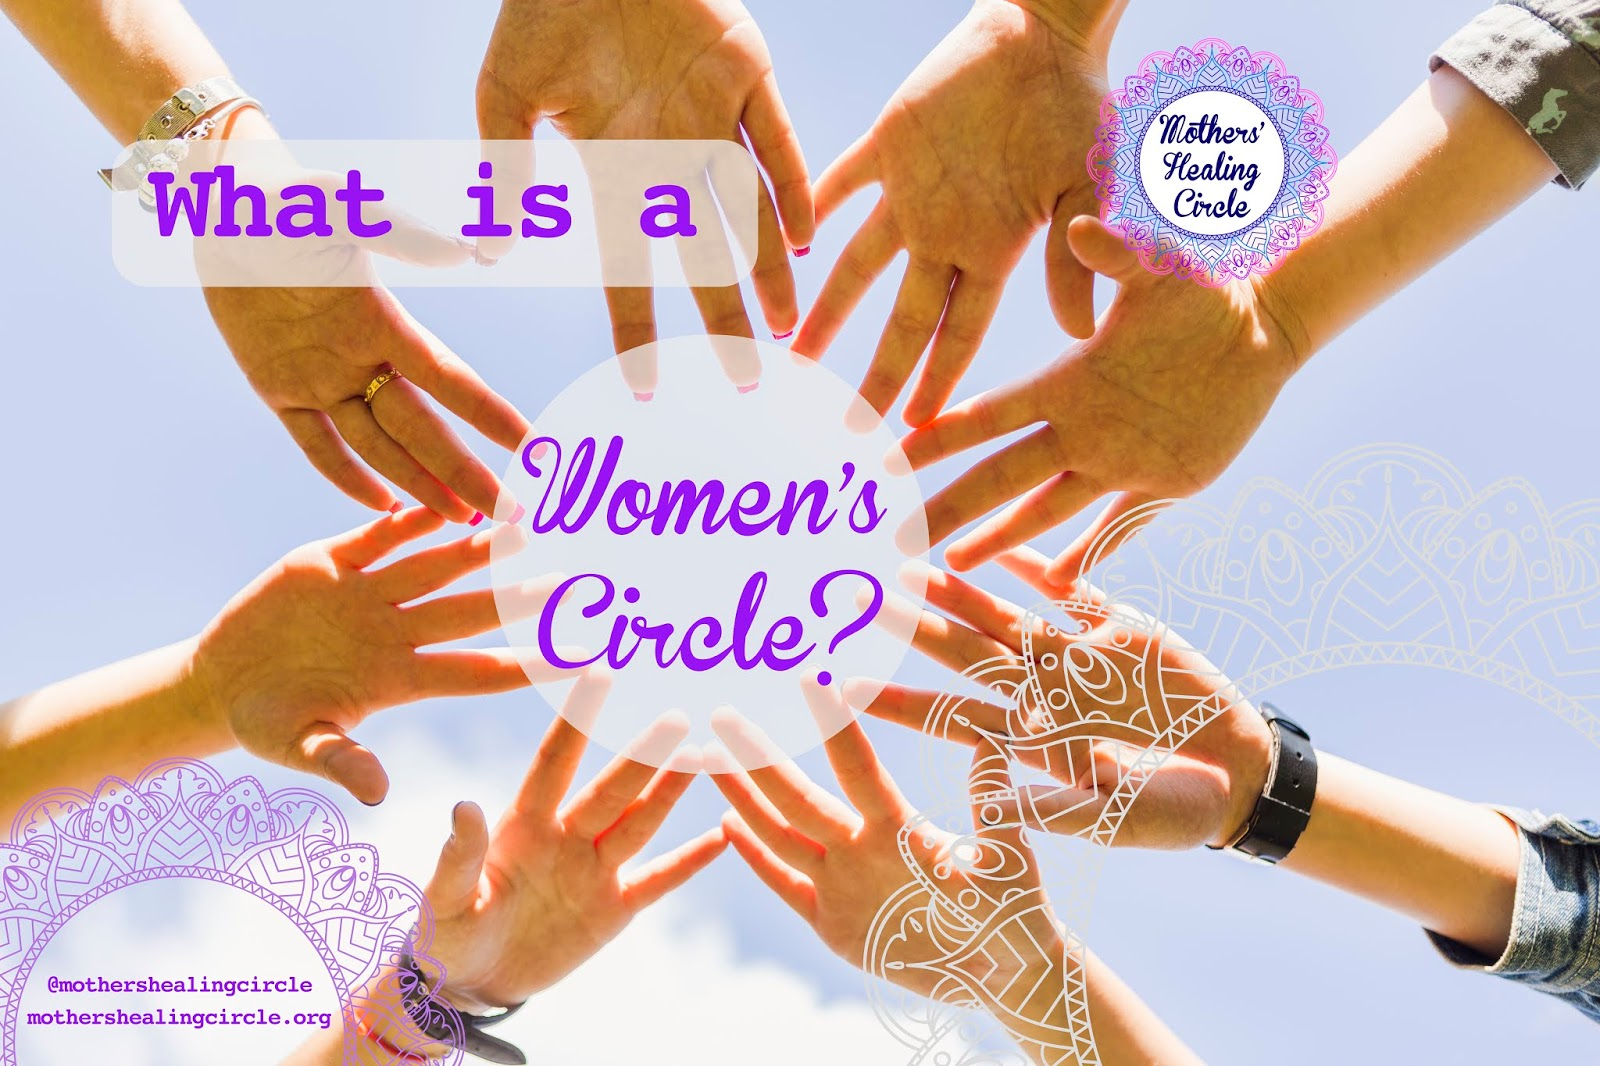 Women's Circles for birth preparation, birth experience healing, transition to motherhood, & divine femininity | Mothers' Healing Circle